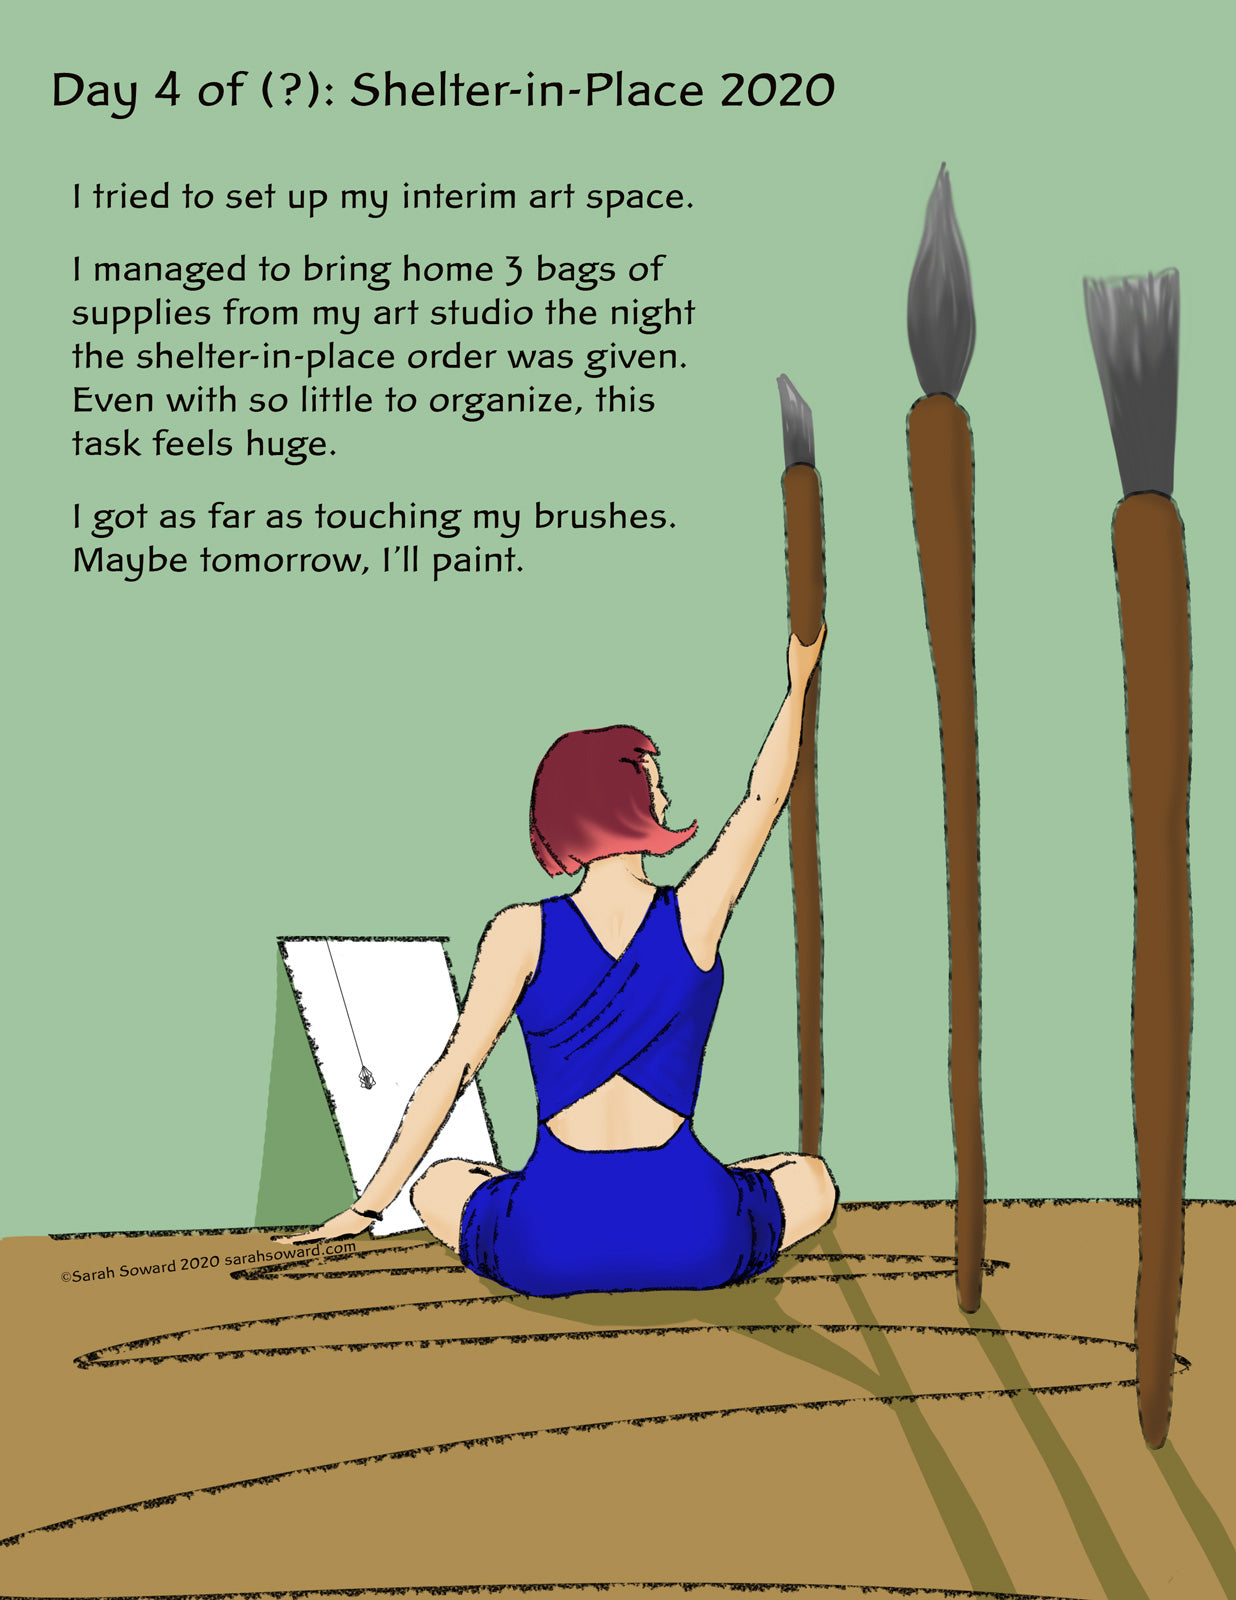 This image is of a woman sitting on the floor, reaching up to gigantic paint brushes. The text on the image reads, I tried to set up my interim art space. I managed to bring home 3 bags of supplies from my art studio the night the shelter-in-place order was given. Even with so little to organize, this task feels huge. I got as far as touching my brushes. Maybe tomorrow, I'll paint.